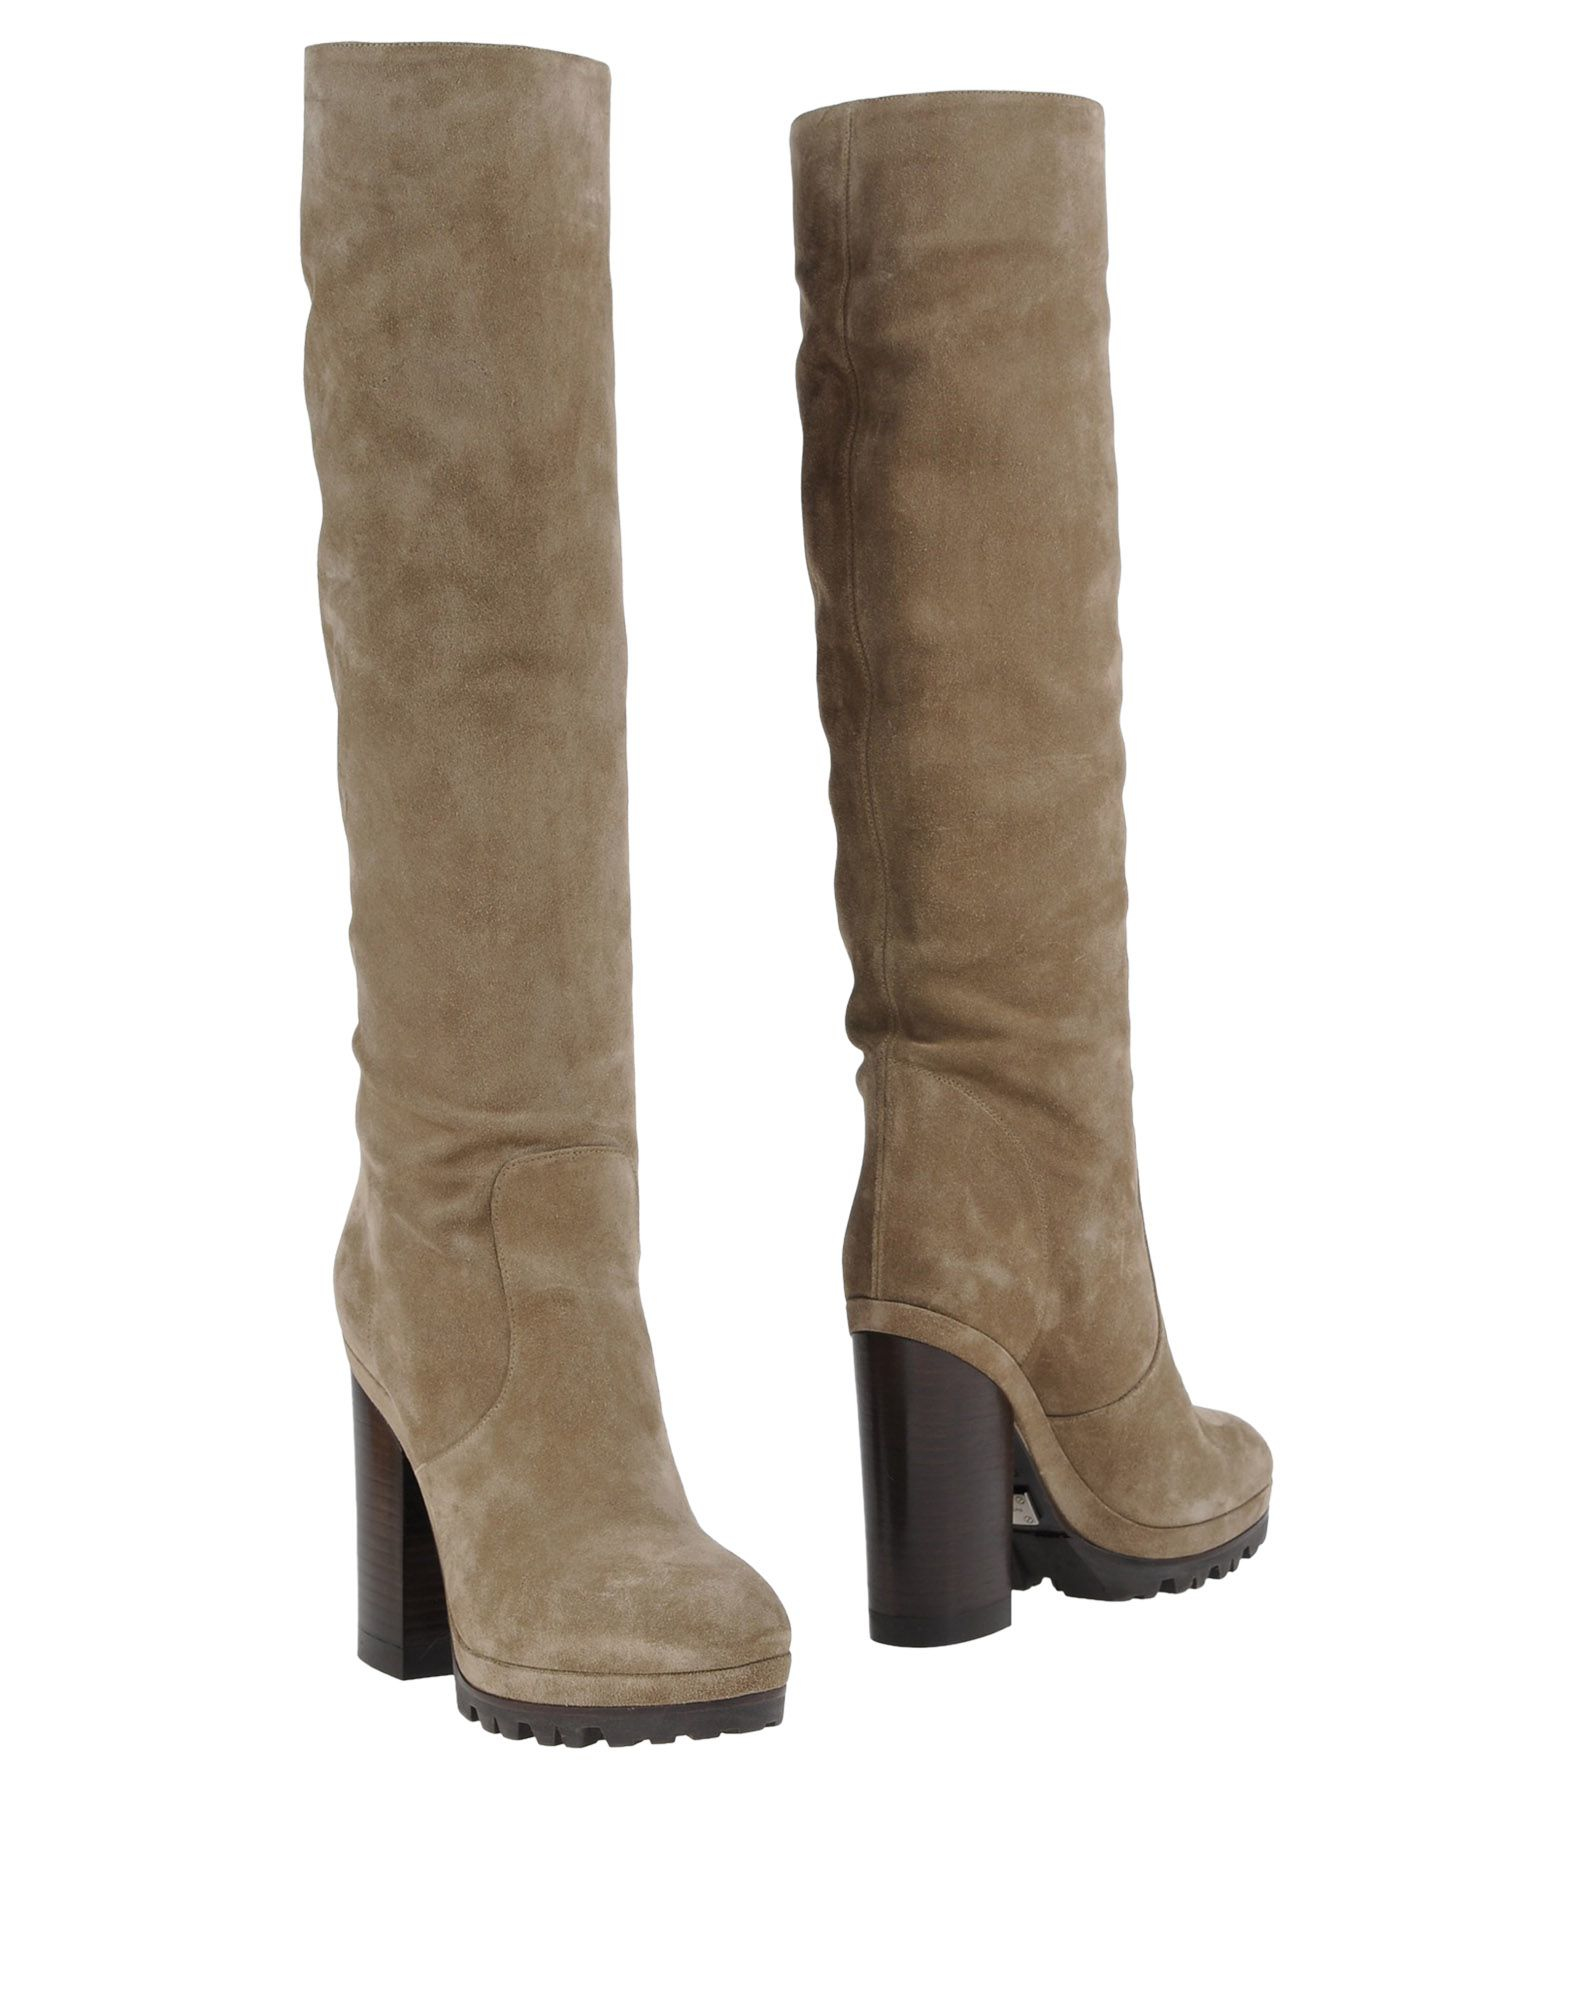 lyst michael michael kors boots in gray. Black Bedroom Furniture Sets. Home Design Ideas